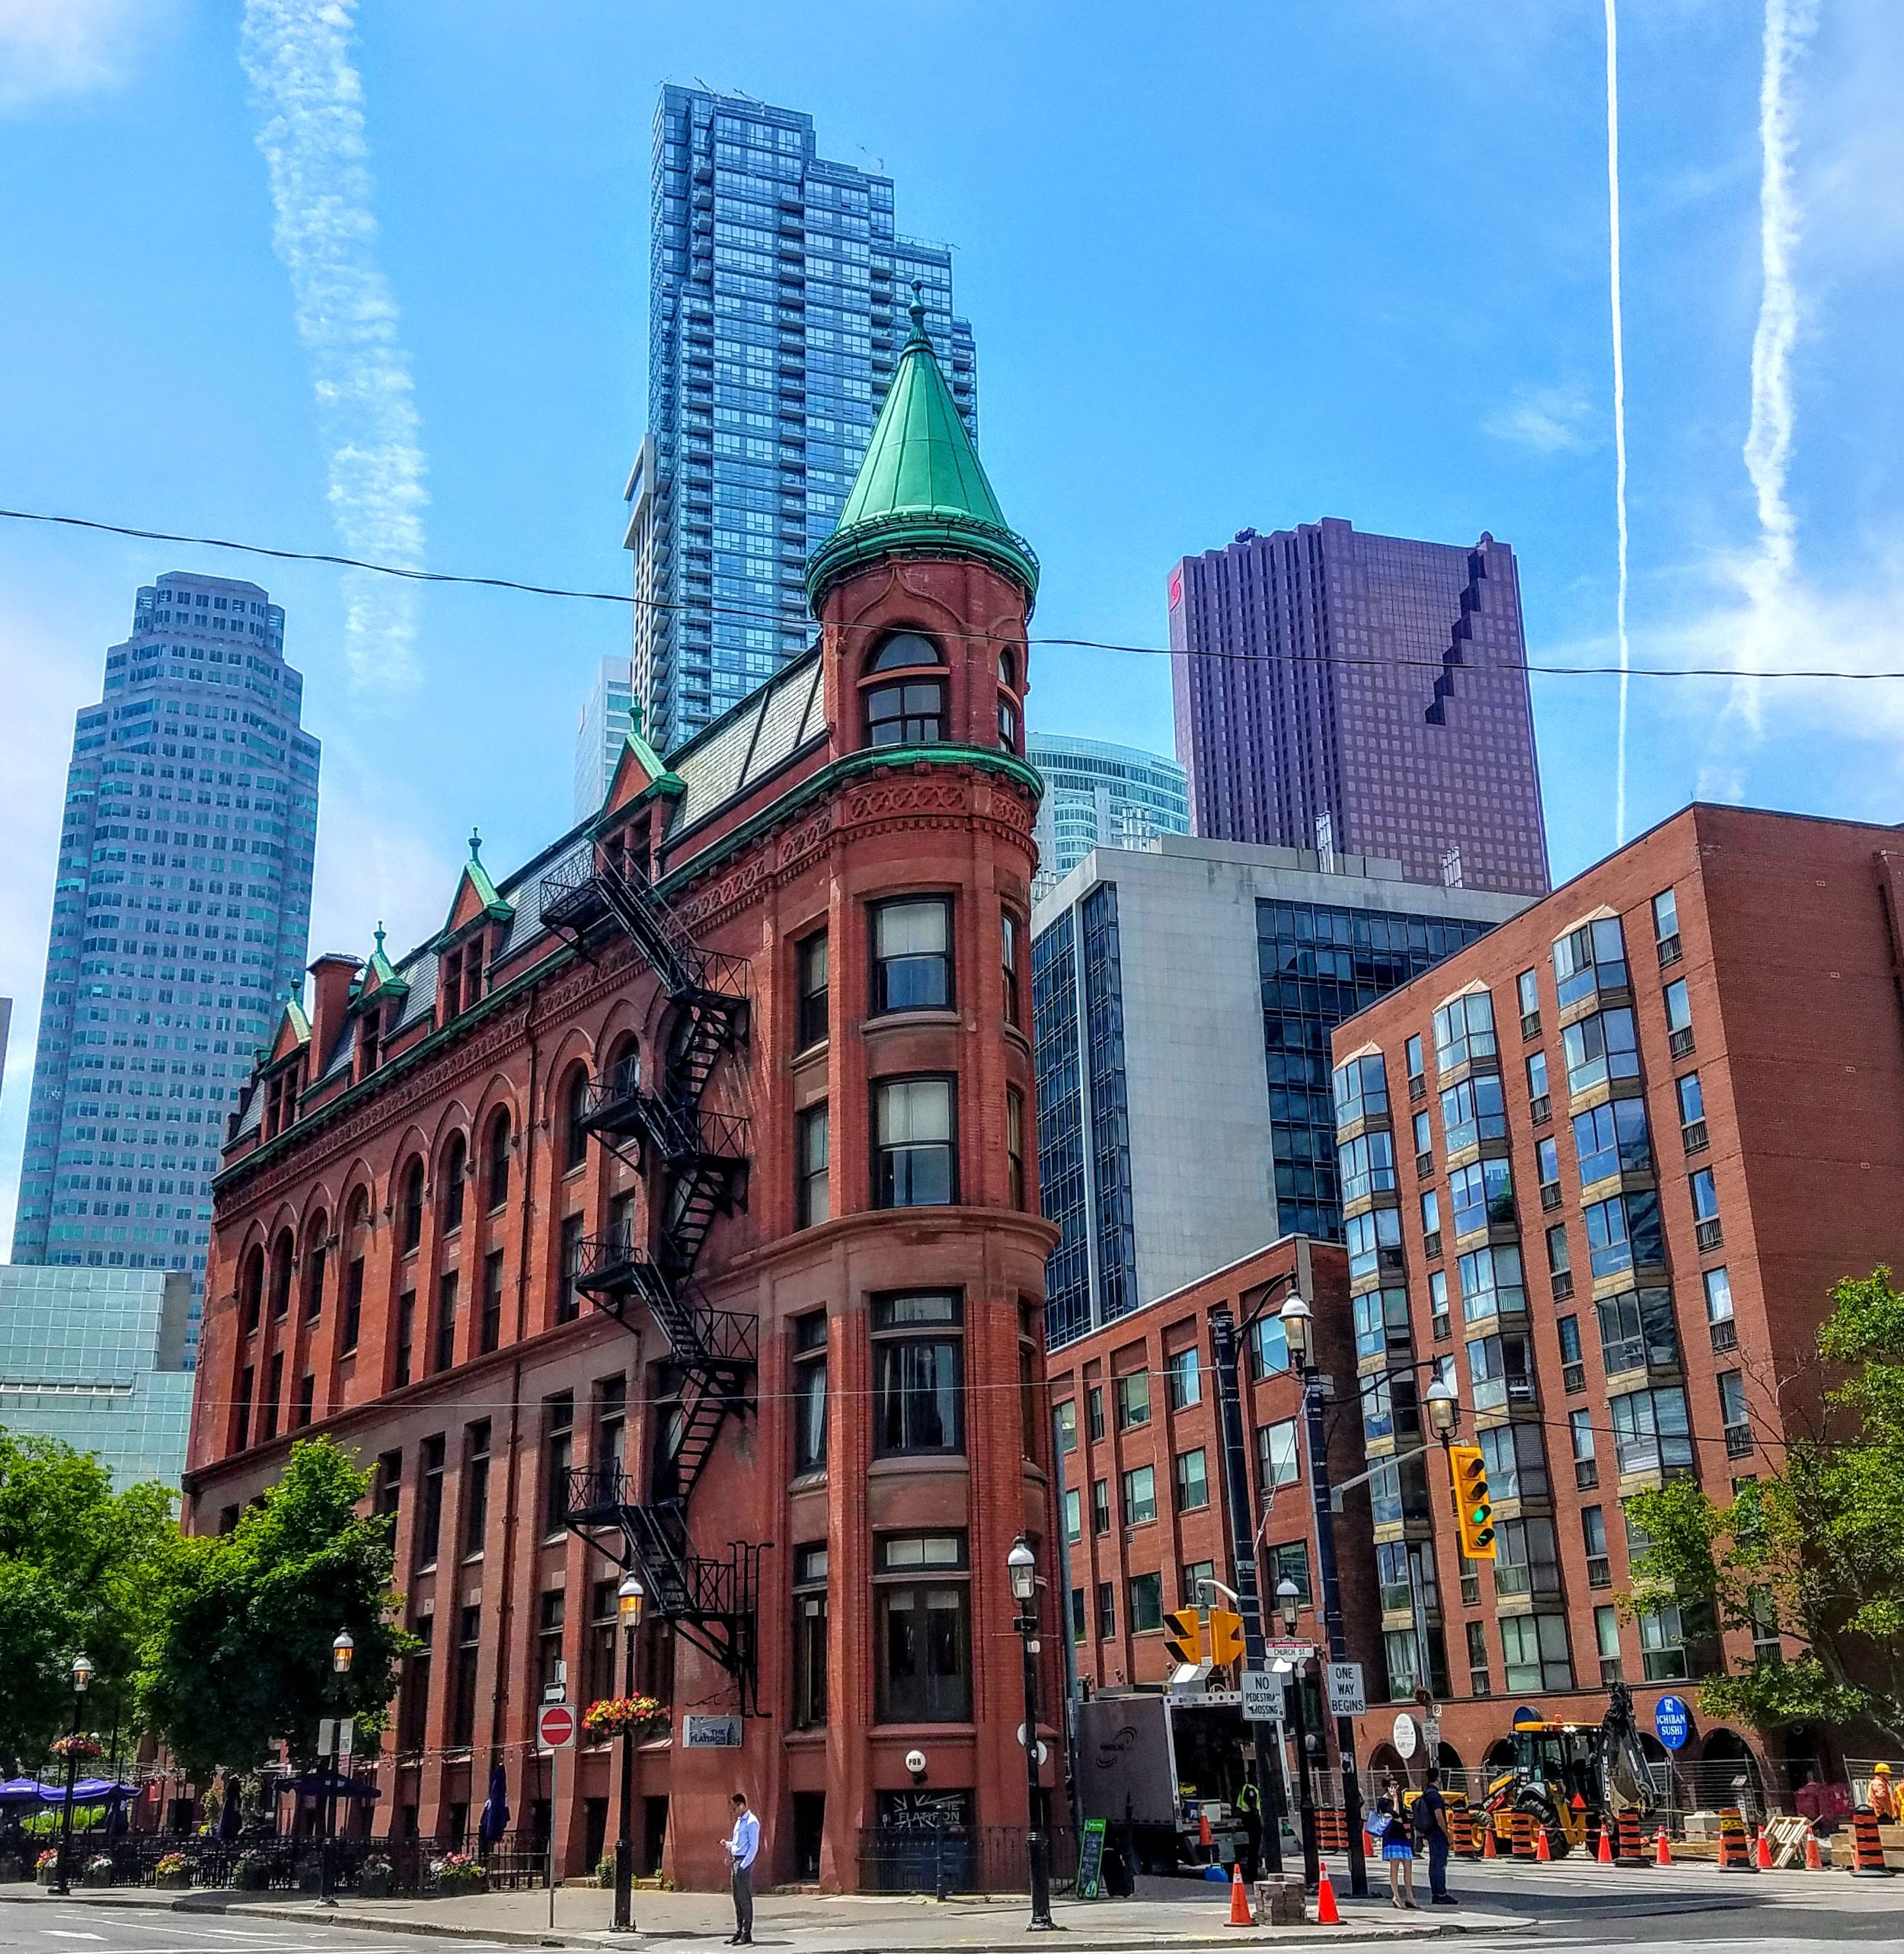 The front of the Gooderham Flatiron Building built back in 1892